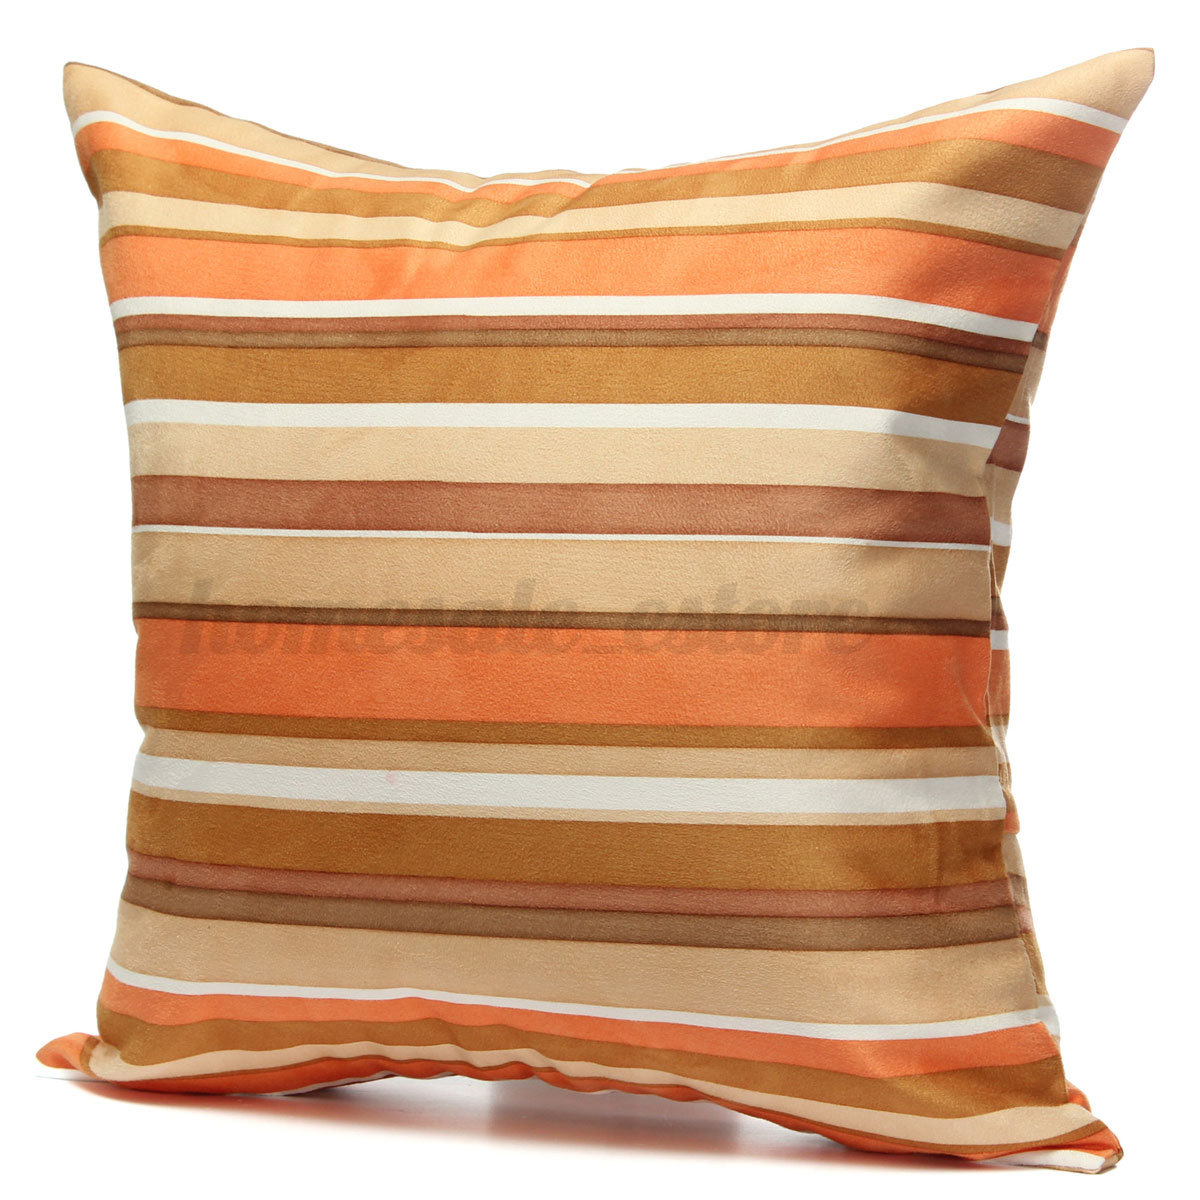 Vintage Pillows: Vintage Simple Style Home Bedroom Decor Seat Back Pillow